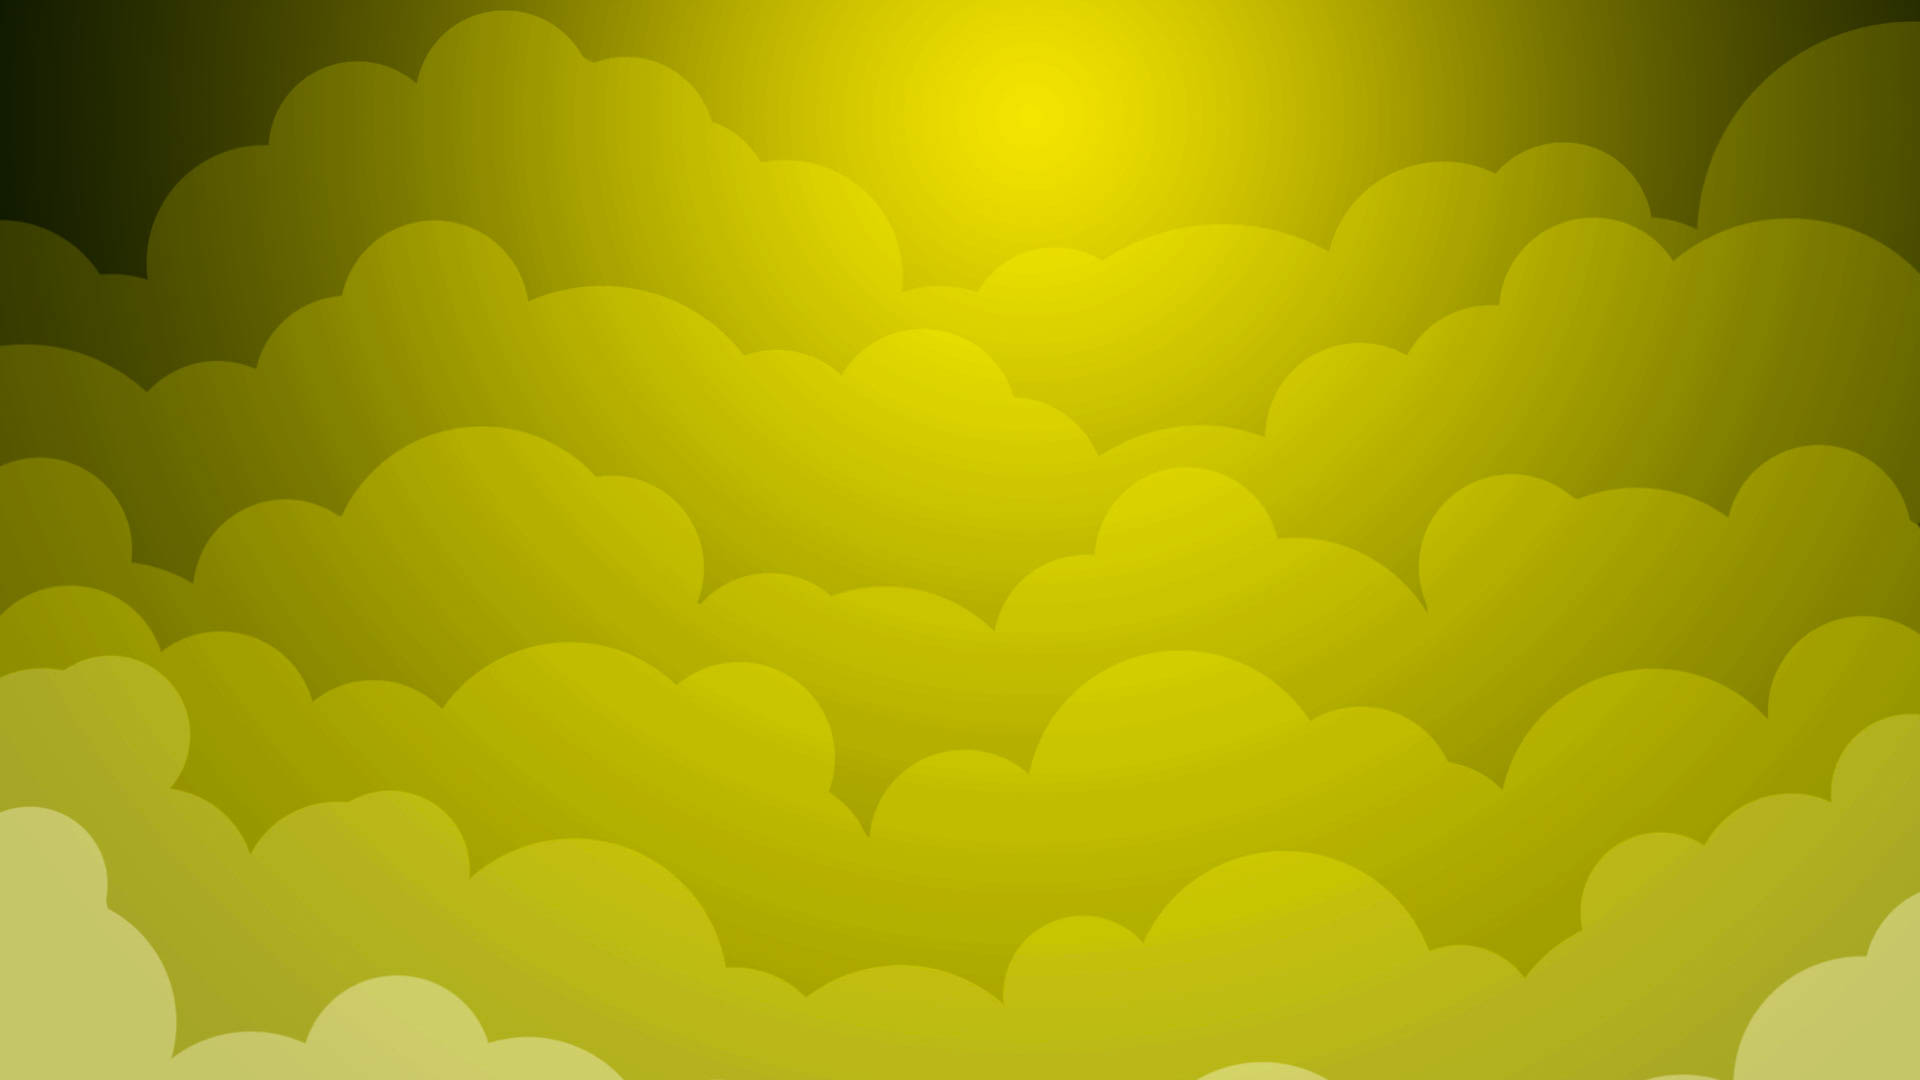 Smartphone Wallpapers Hd Free Clouds Hd Wallpapers Images Abstract High Definition